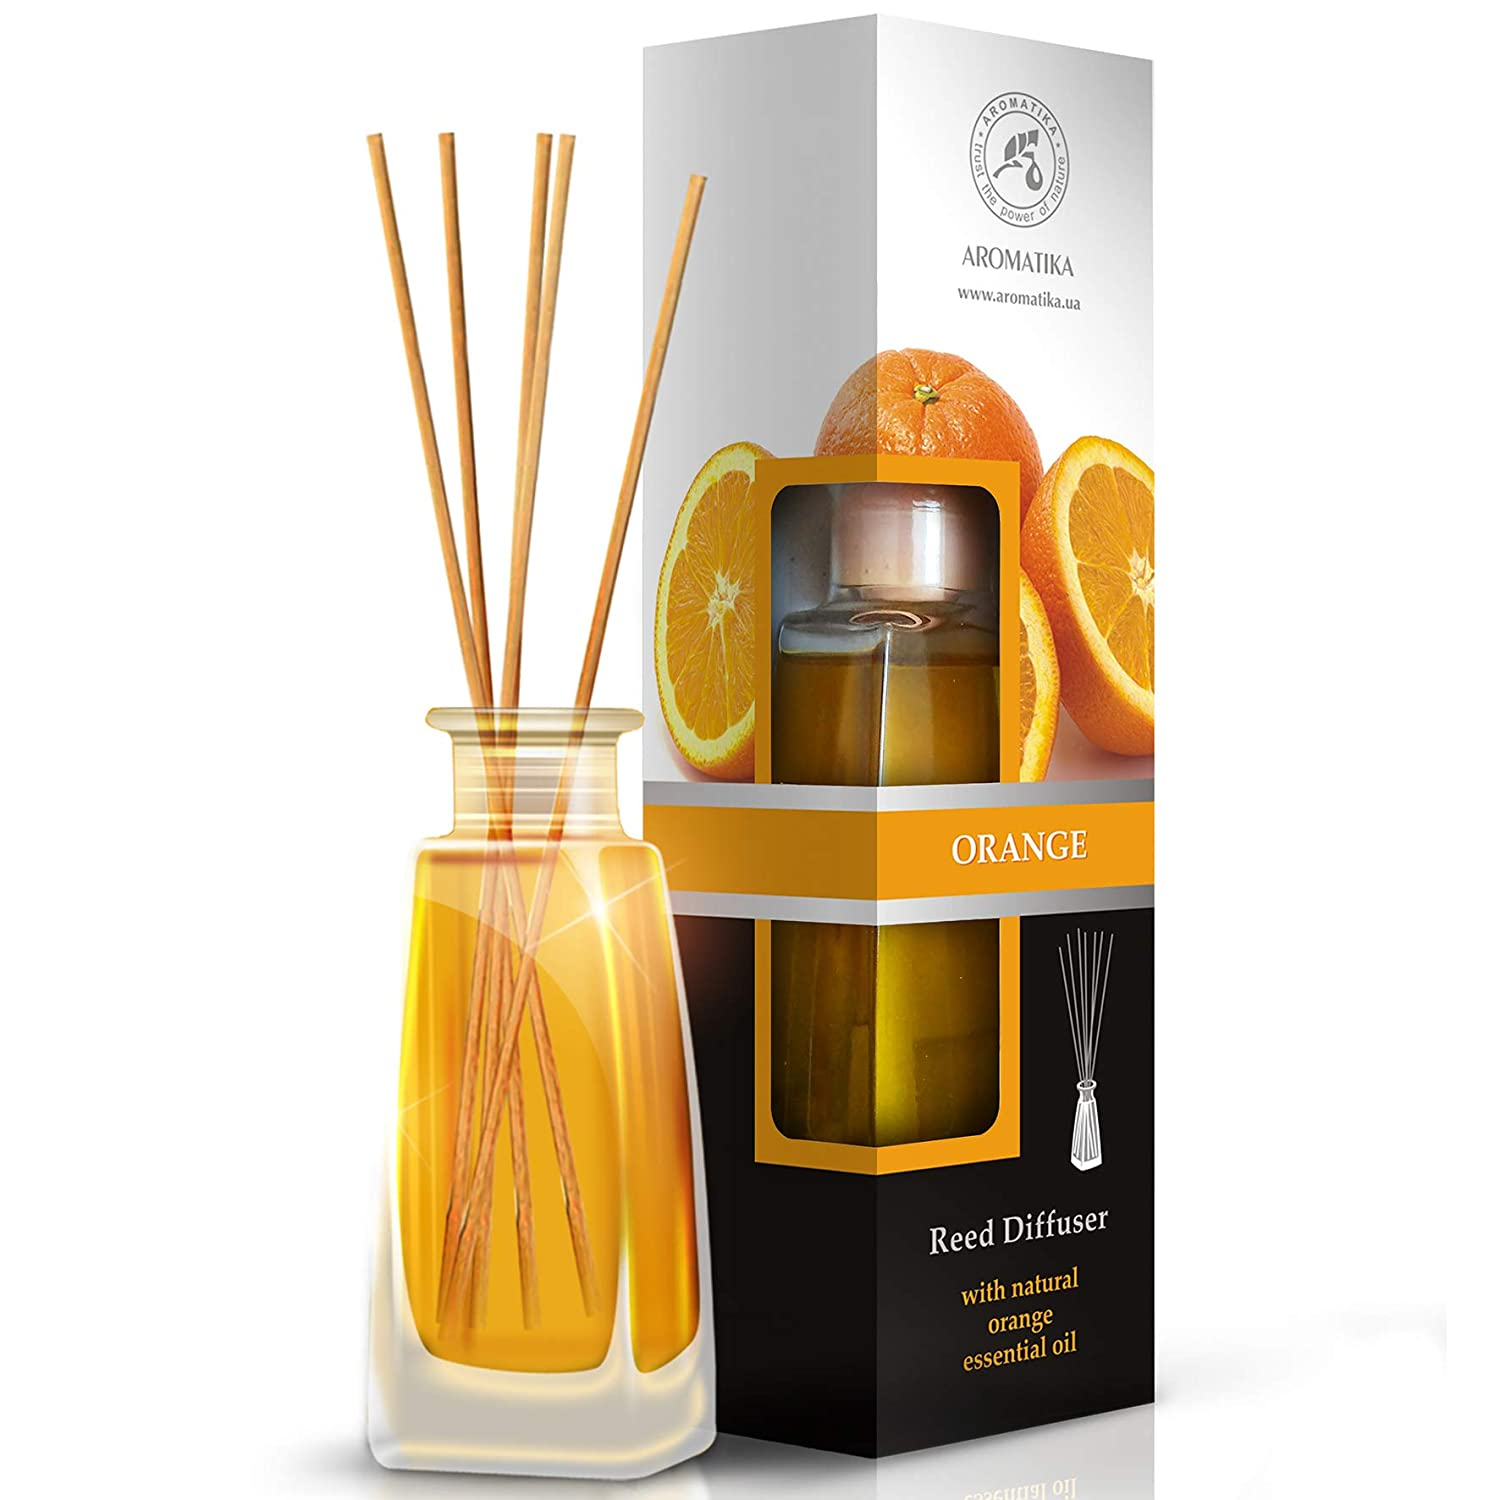 Orange Reed Diffuser w/ Natural Essential Orange Oil 100ml - Intensive - Fresh & Long Lasting Fragrance - Scented Reed Diffuser - 0% Alcohol - Diffuser Gift Set w/ 8 Bamboo Sticks is the Best for Aromatherapy - Spa - Home - Kitchen - Bath - Office - F